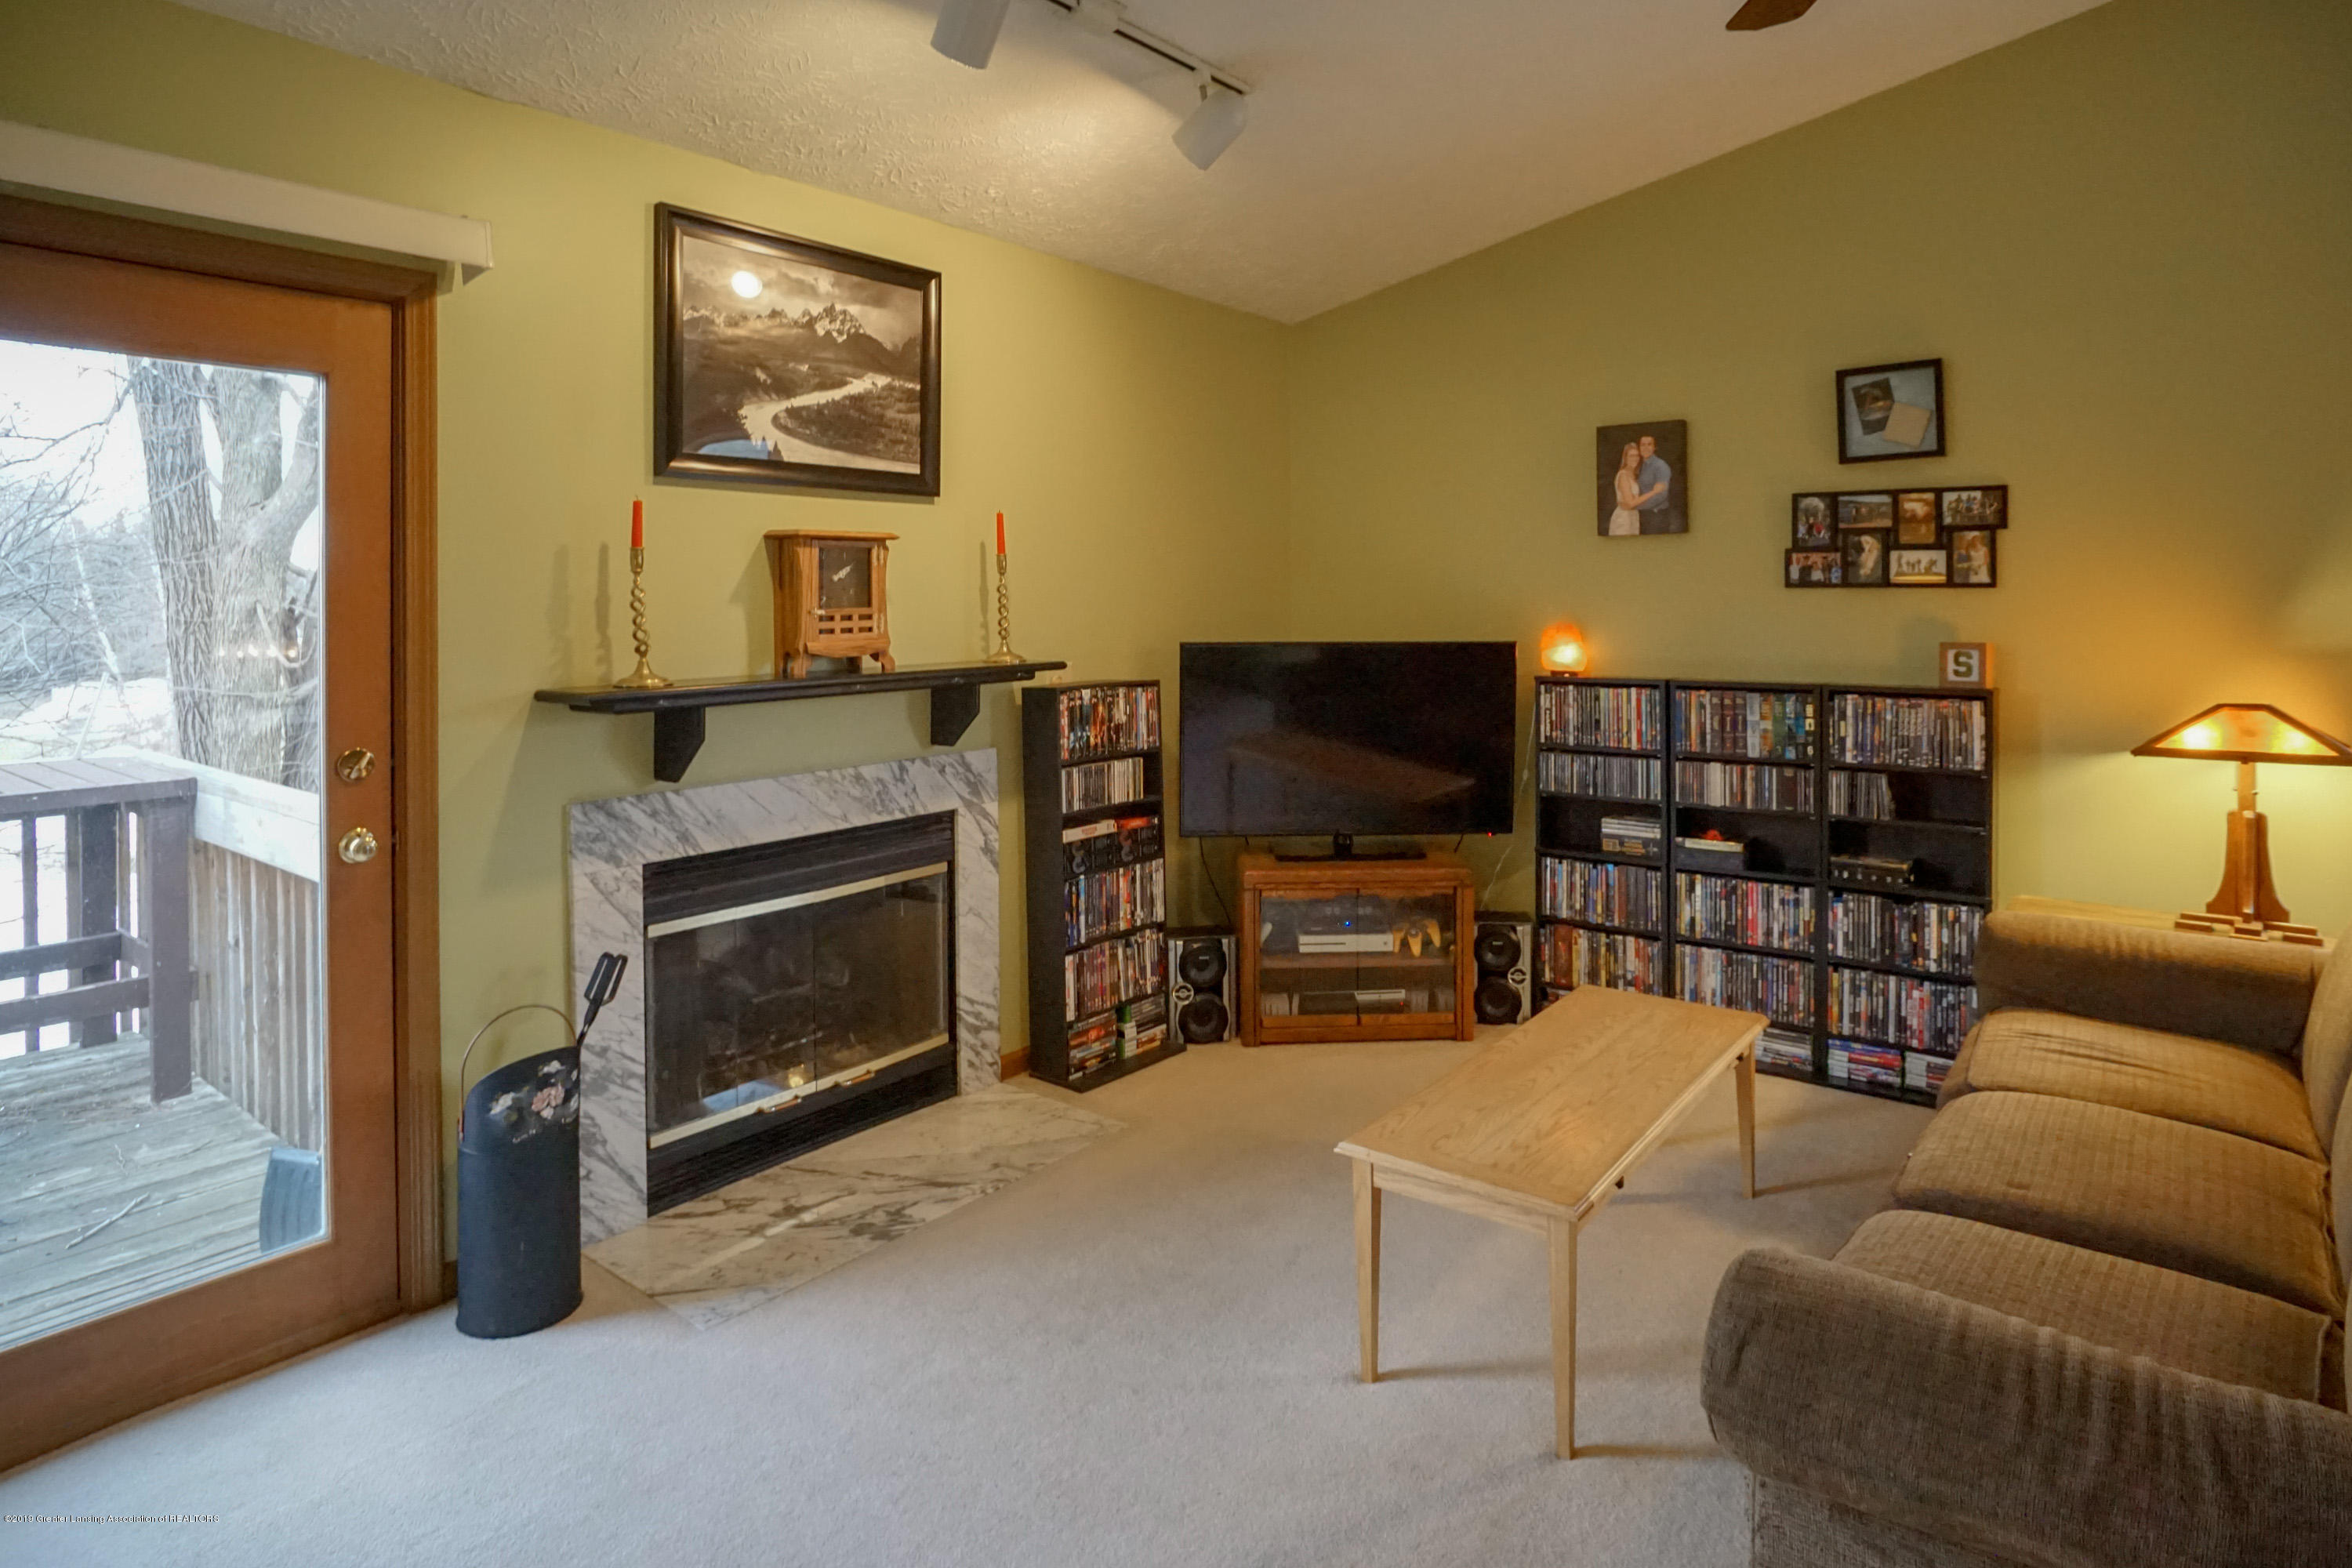 5041 W Willoughby Rd APT 1 - 5140WilloughbyRdMLS-11 - 8